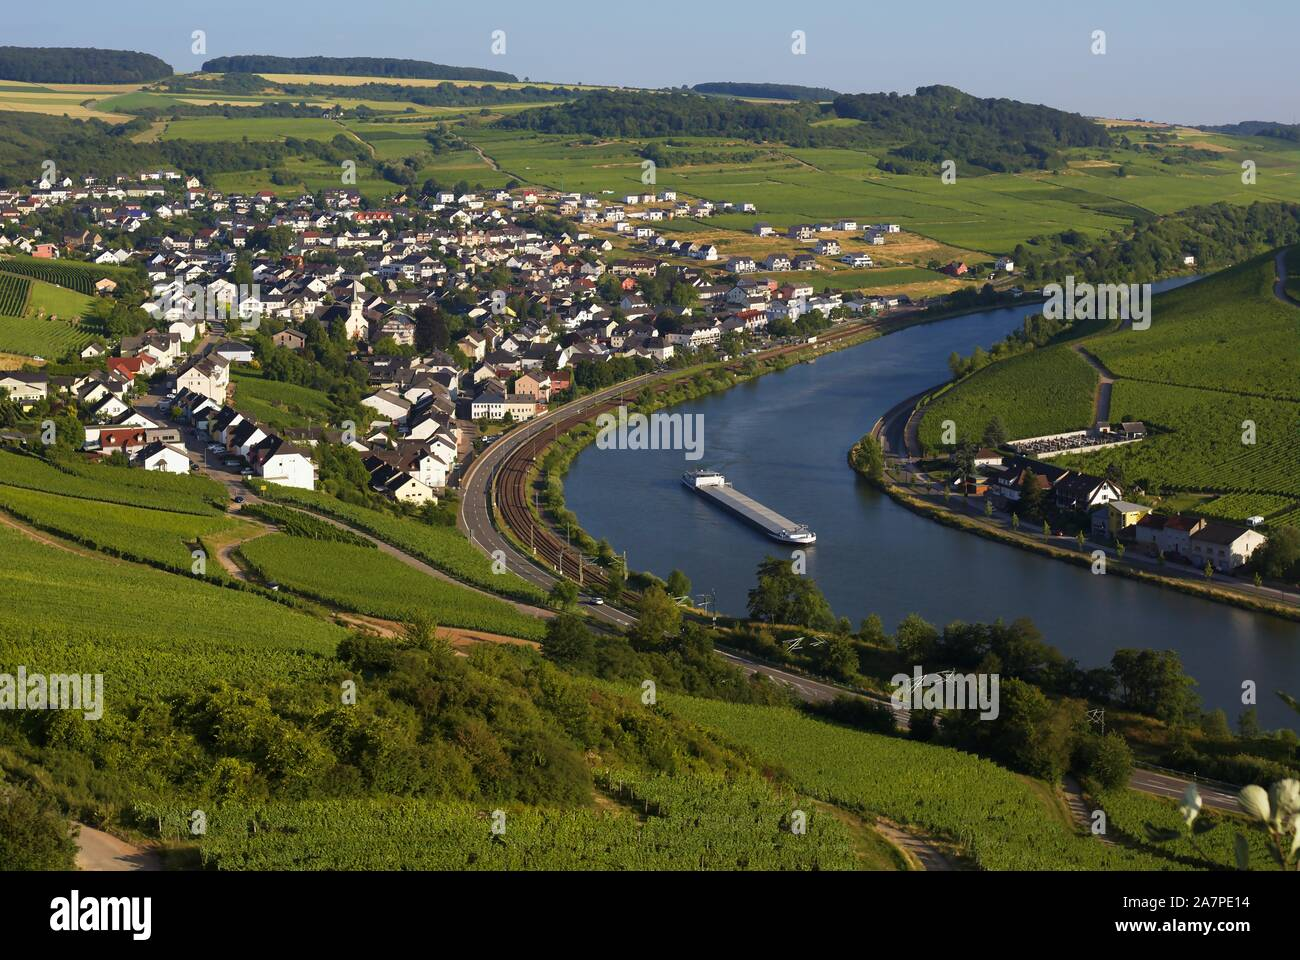 high-vantage-point-view-of-vinyards-near-nittel-and-moselle-river-rhineland-palatinate-germany-2A7PE14.jpg